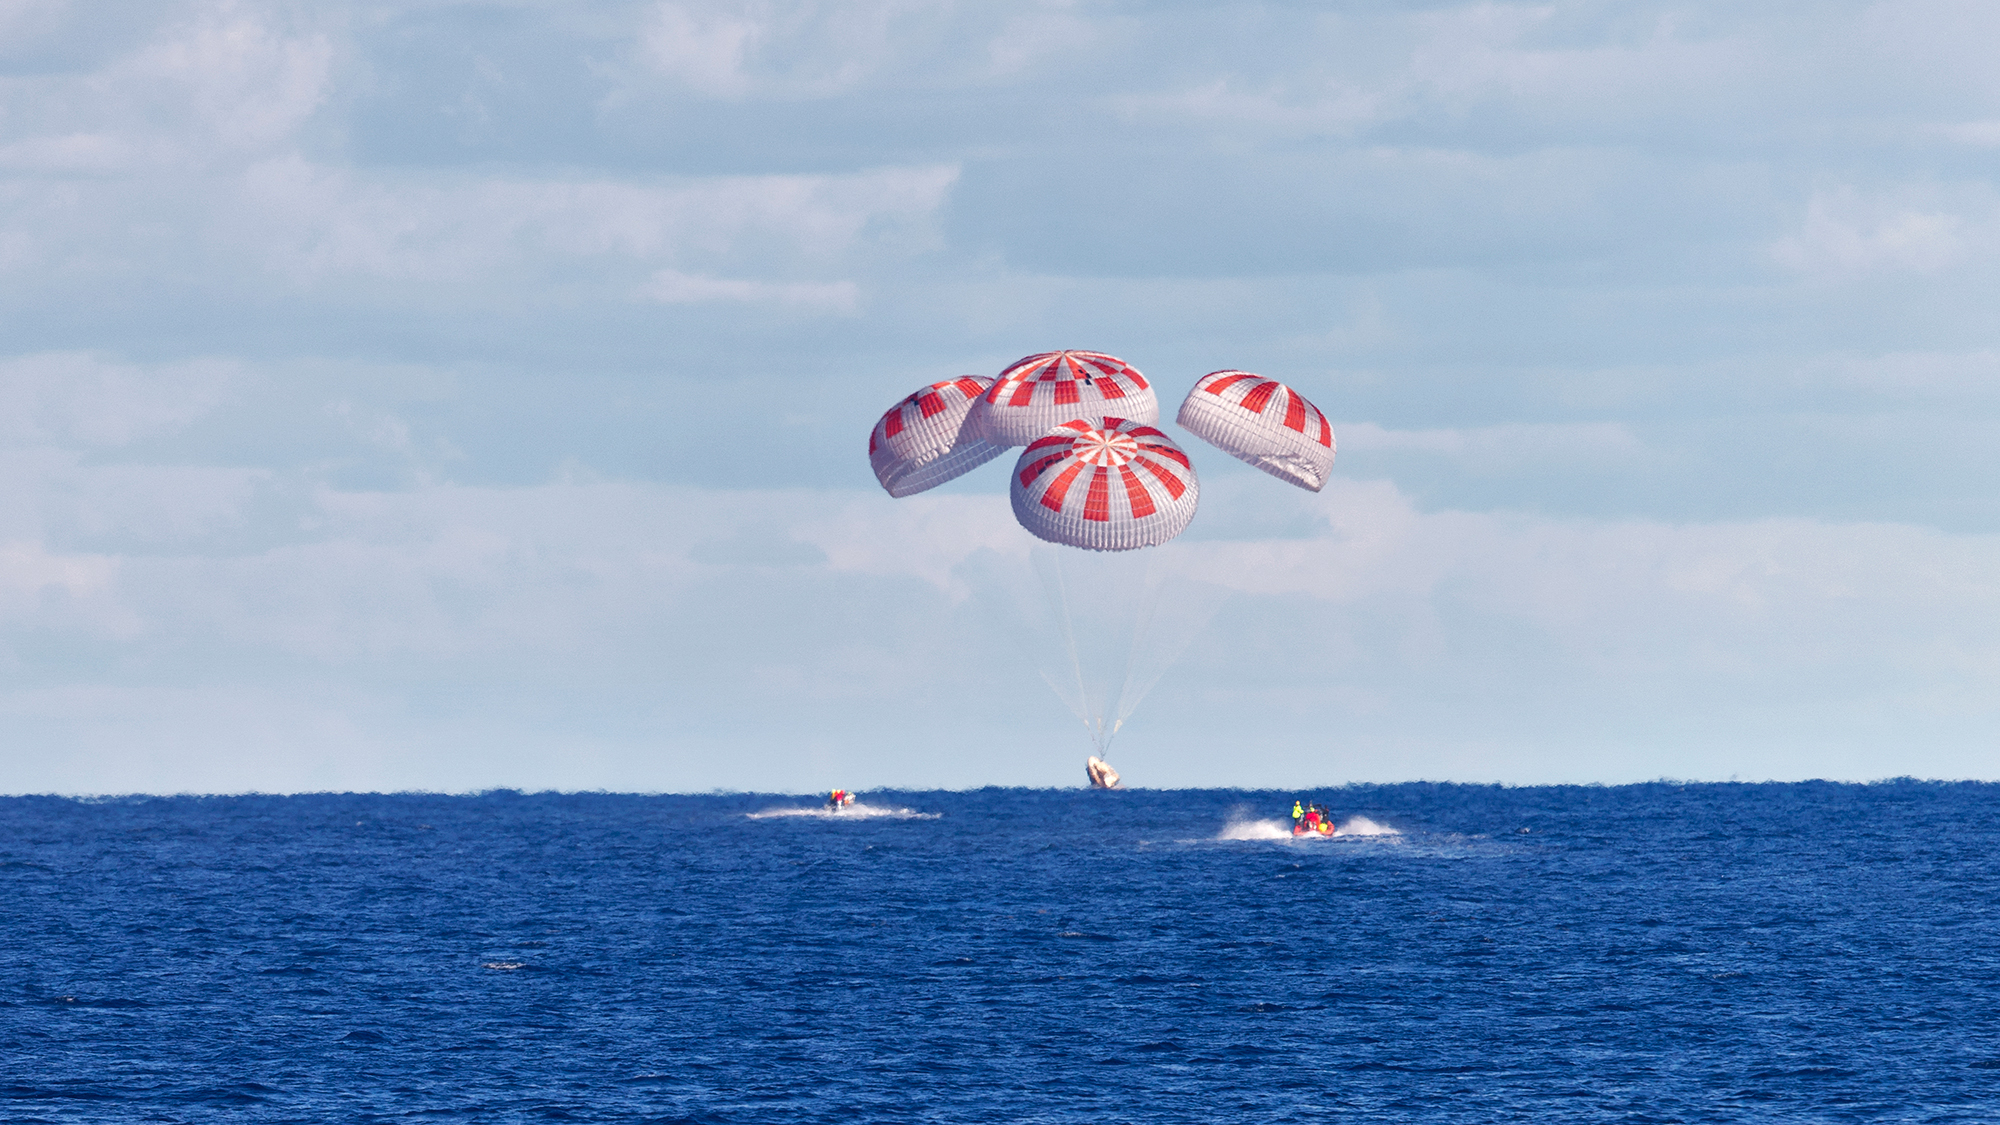 SpaceX's first Crew Dragon parachutes to a splashdown in the Atlantic Ocean during the uncrewed Demo-1 mission on March 8, 2019.